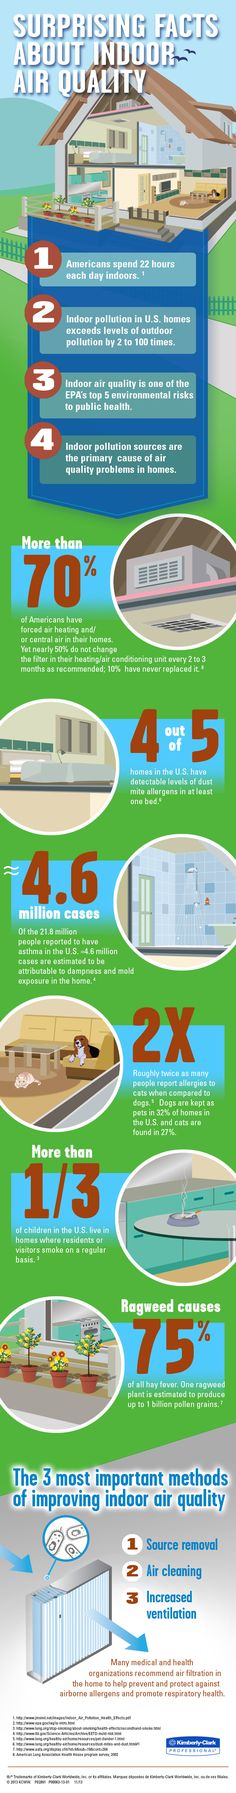 Surprising Facts about Indoor Air Quality (infographic)